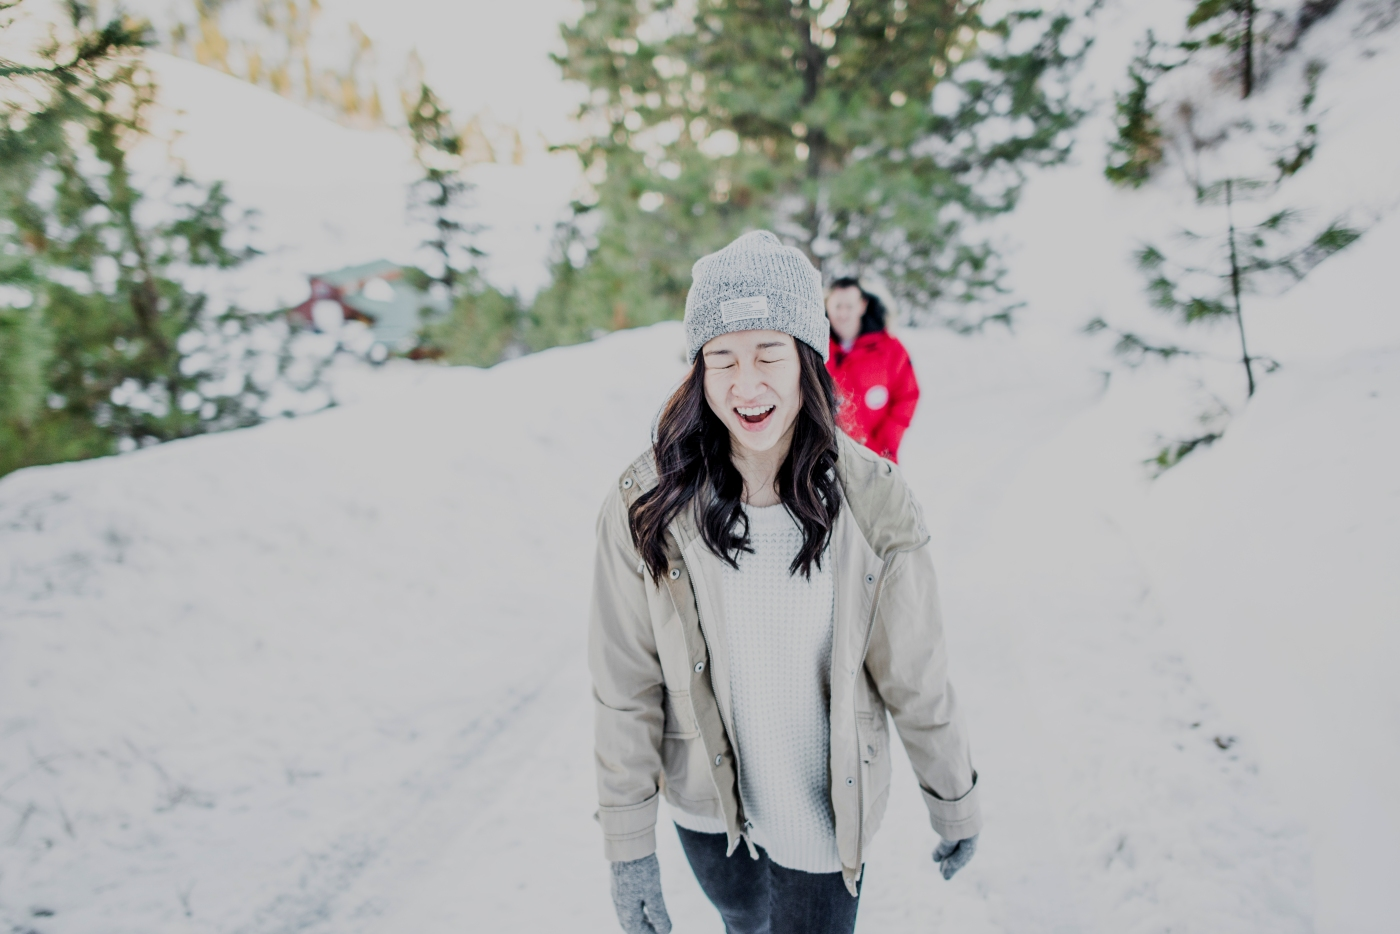 leavenworth_elopement_by_jane_speleers_photography_seattle_photographer_2017_winter_snow_joy_and_jason_rendezvous_ranch_cashmere_leavenworth_nahahum_canyon_all_rights_reserveddsc_9921